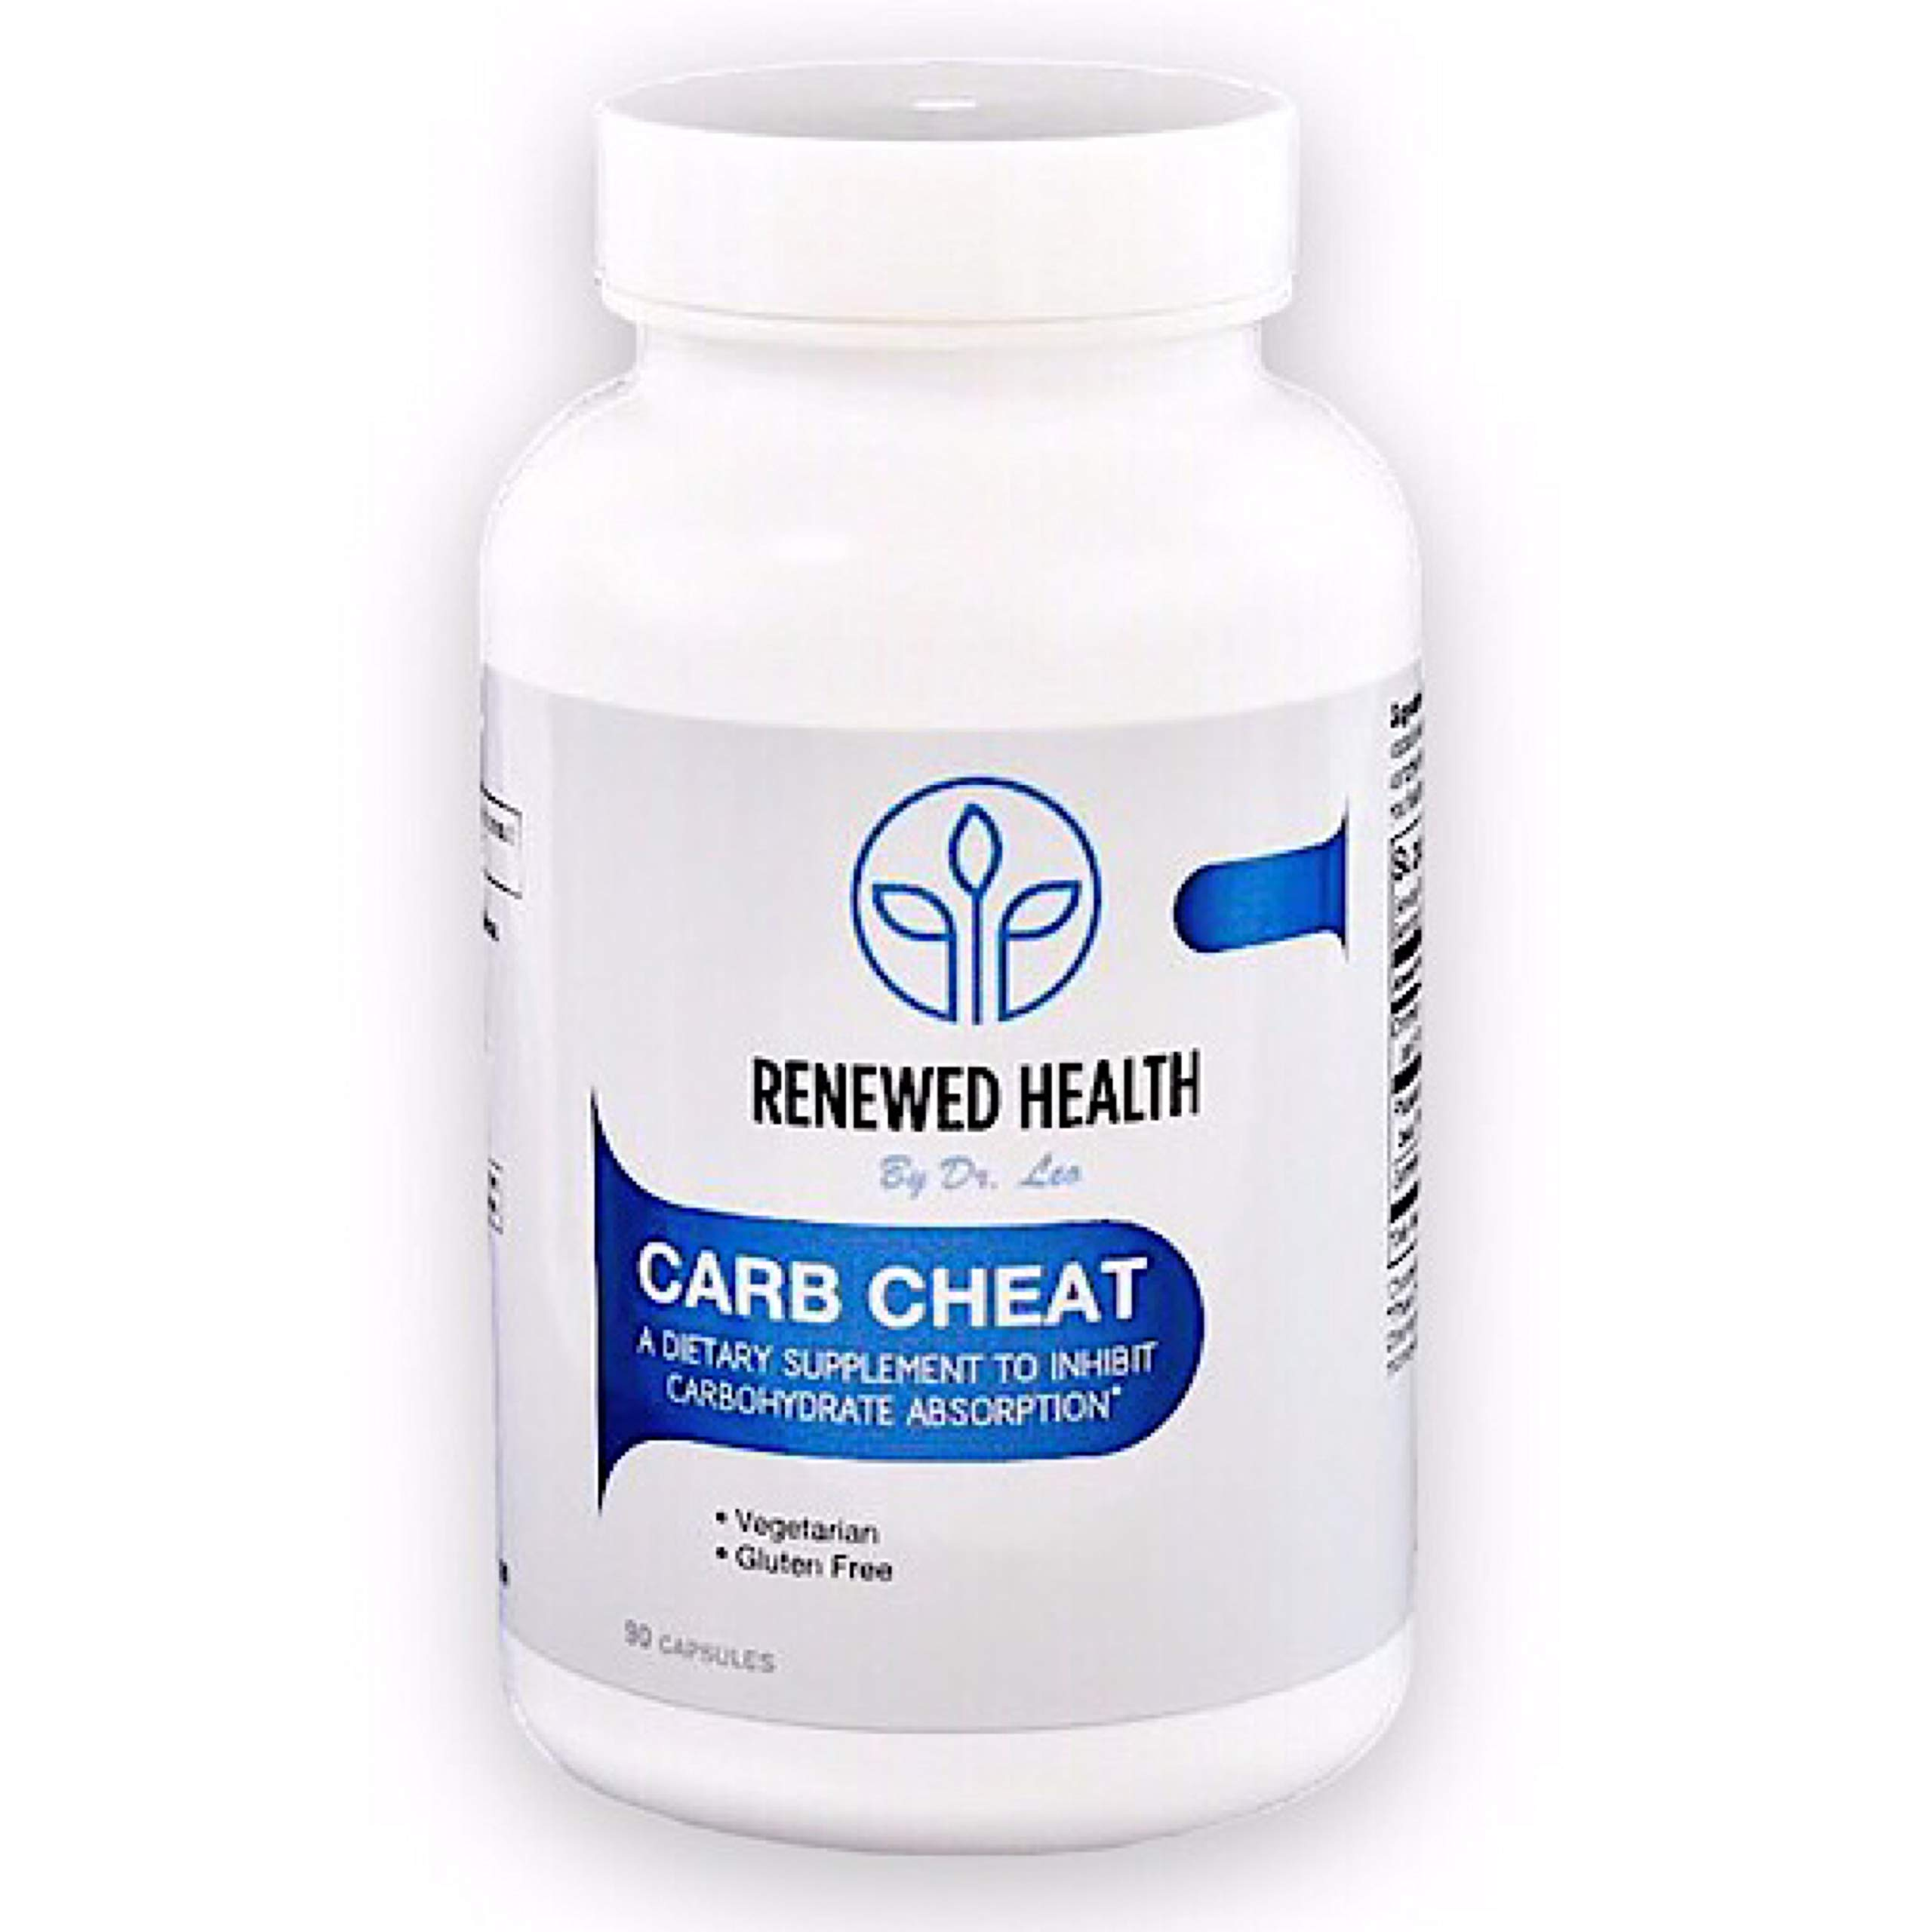 Keto Carbohydrate Blocker Carb Cheat for Easy, Effective Weight Loss 90 Caps. Fat Burner, Supports Glucose Levels, Neutralizes Calories from Complex Carbs